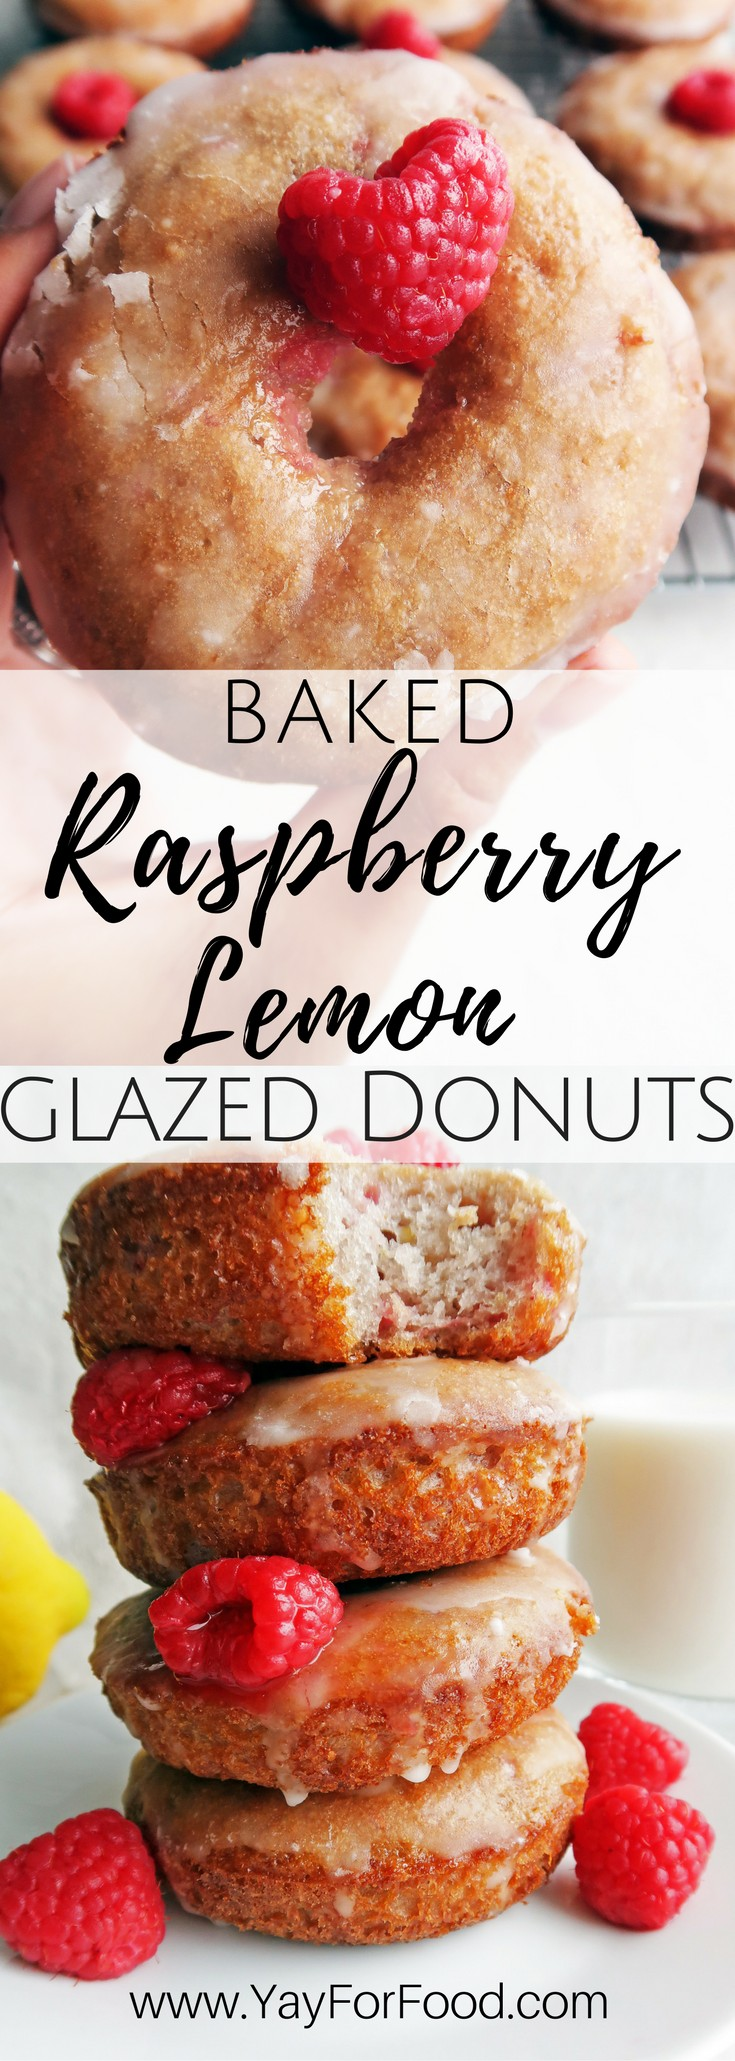 Enjoy fresh, light, and fluffy lemon raspberry donuts covered with a lemon glaze! These baked homemade treats are easy and made from scratch!